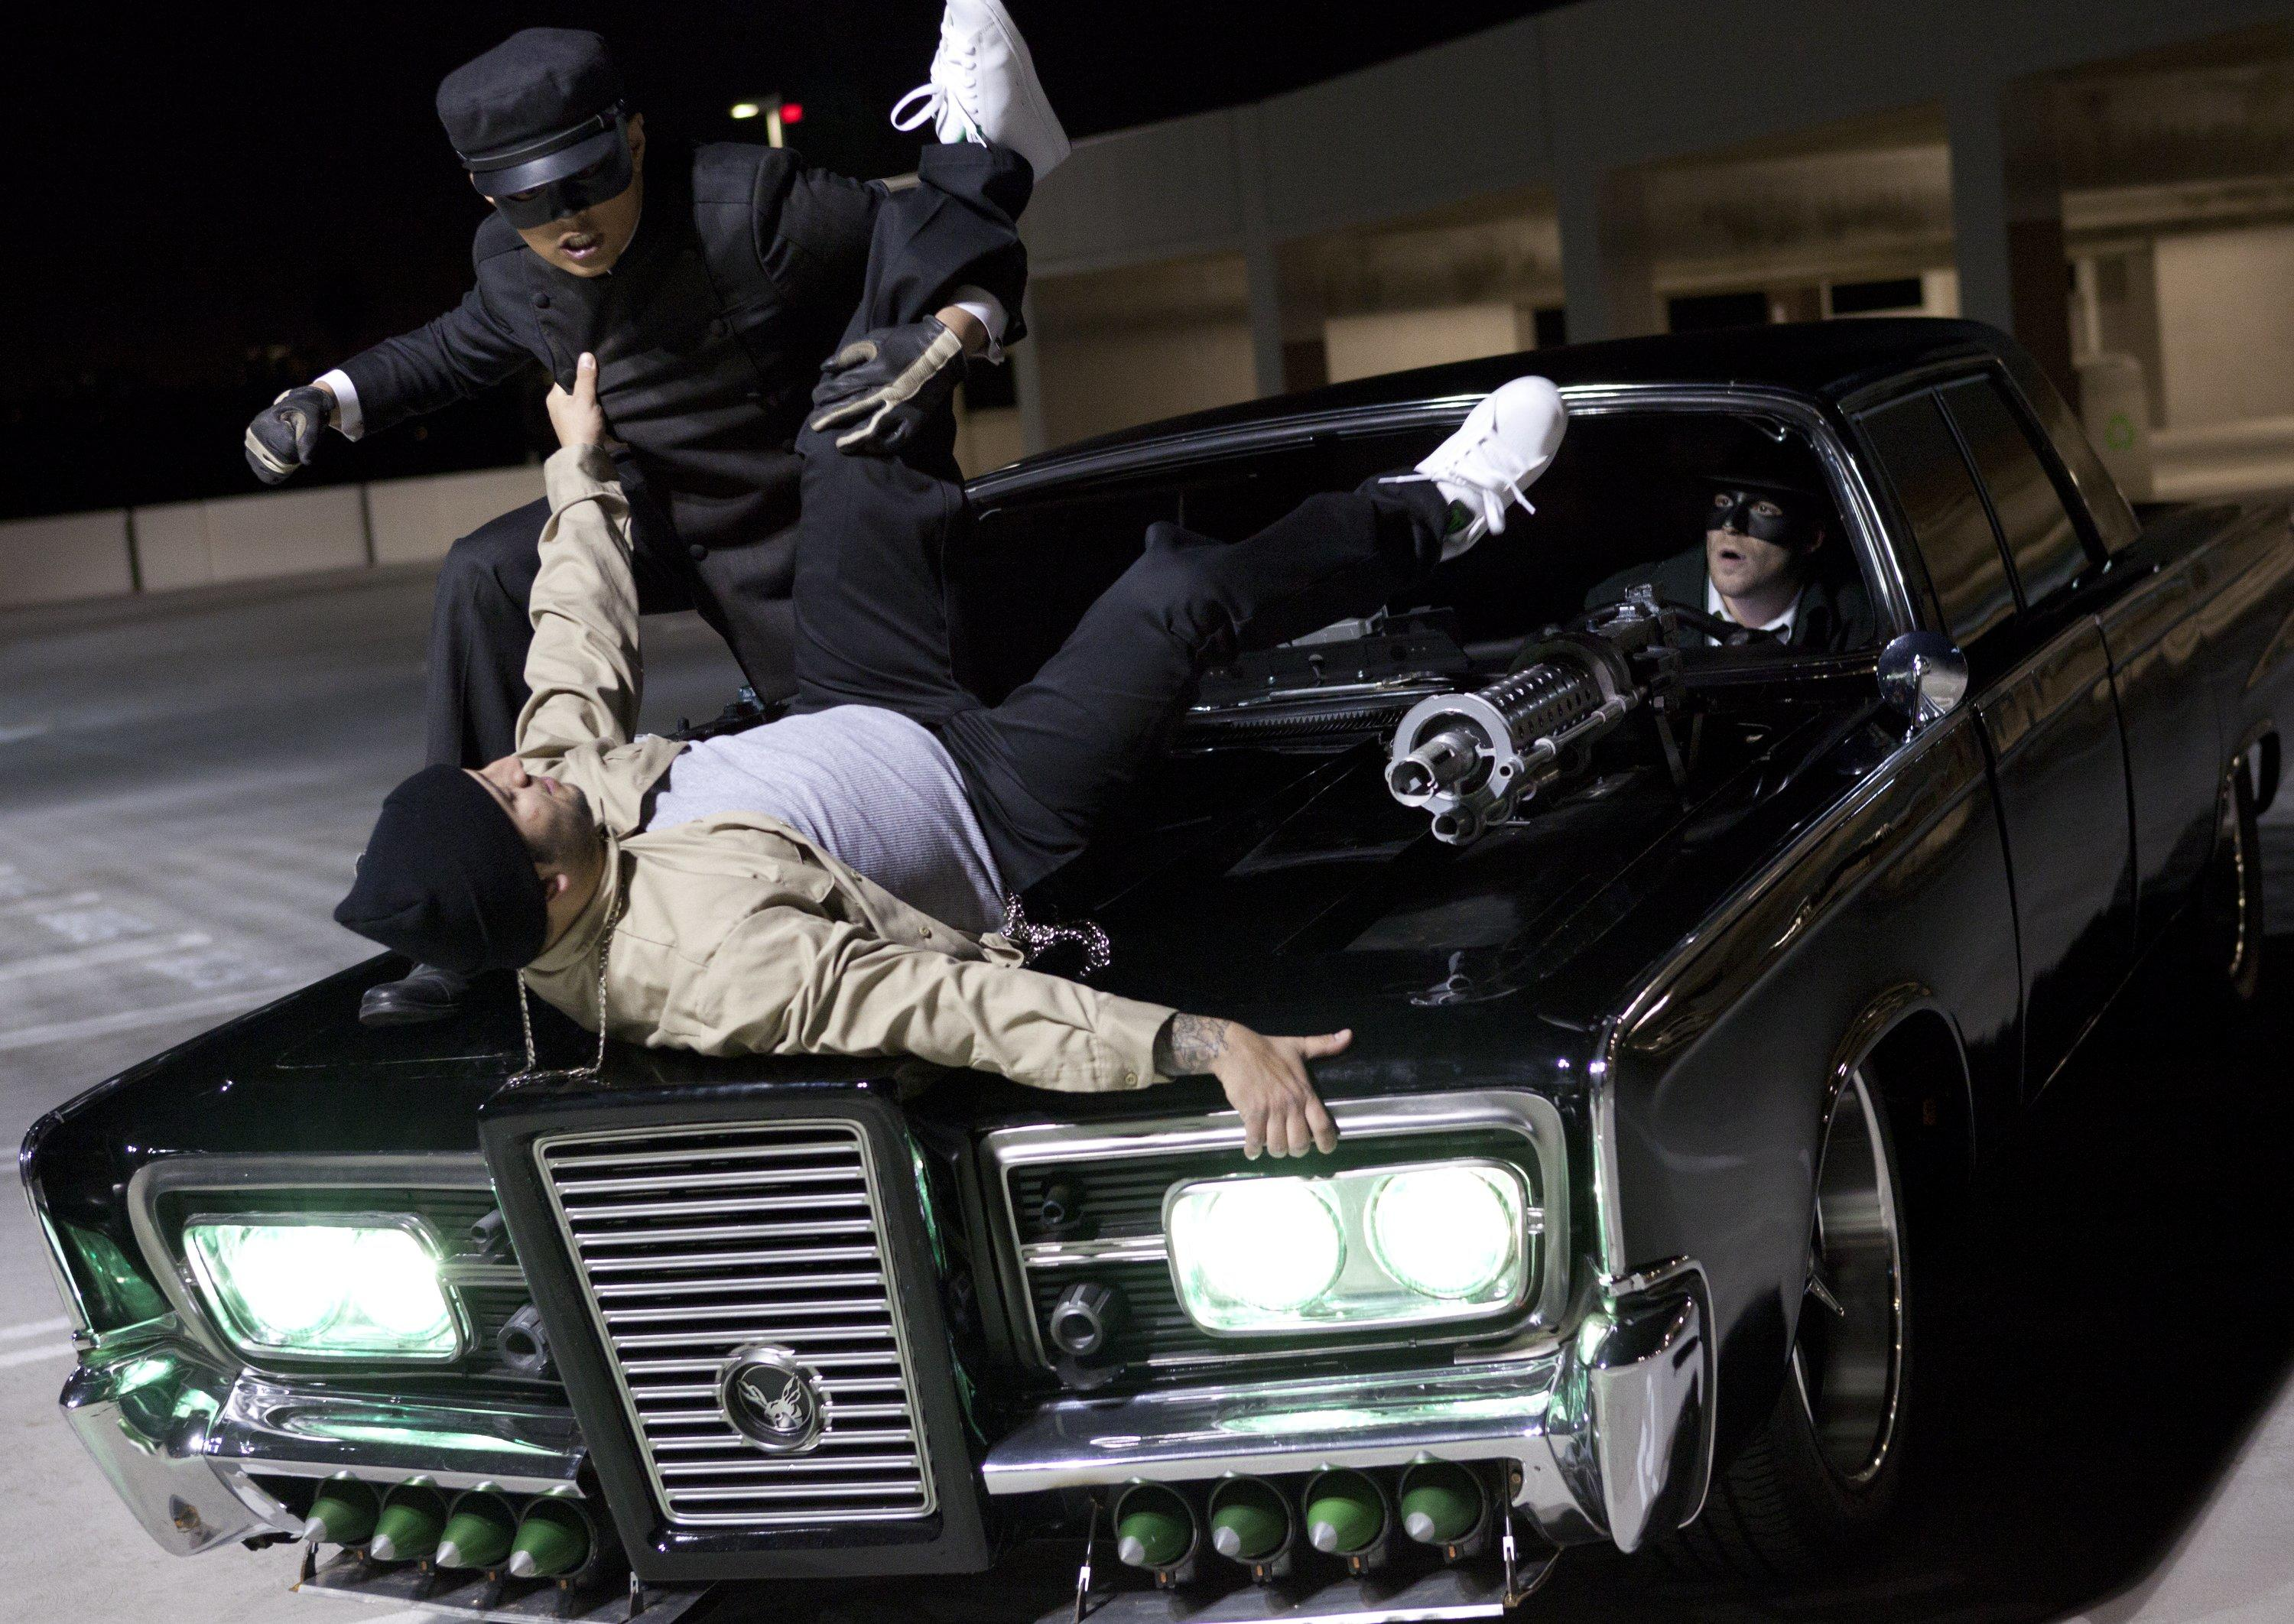 Kato (Jay Chou) stops a hoodlum atop the hood of Black Beauty with The Green Hornet (Seth Rogen) behind the wheel in The Green Hornet (2011)